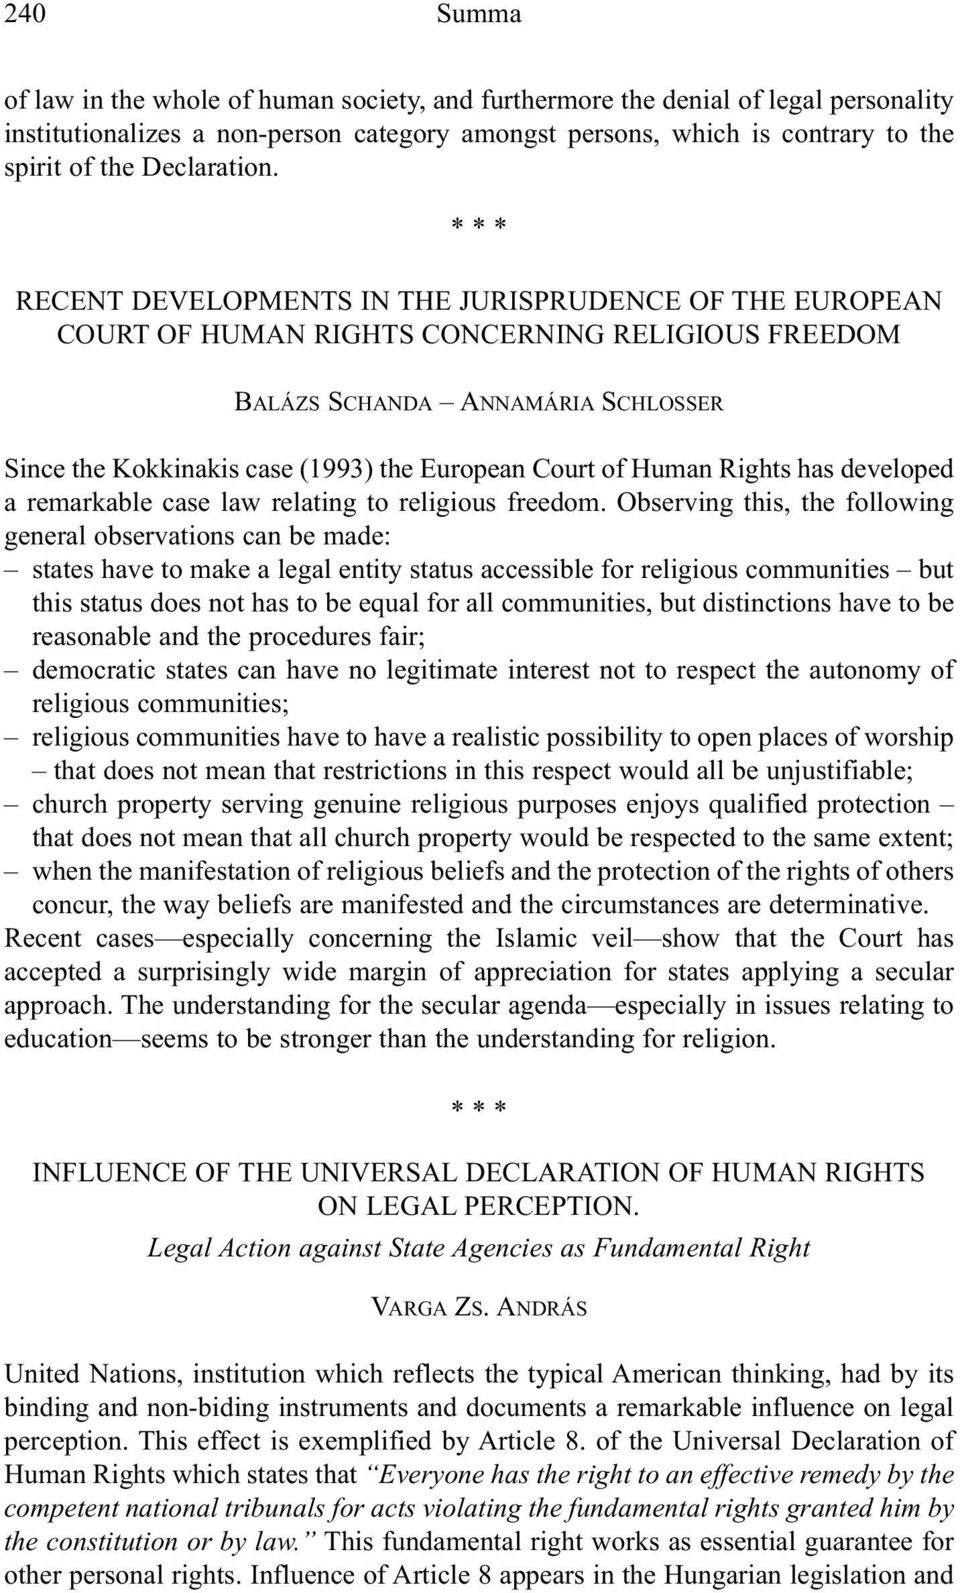 RECENT DEVELOPMENTS IN THE JURISPRUDENCE OF THE EUROPEAN COURT OF HUMAN RIGHTS CONCERNING RELIGIOUS FREEDOM BALÁZS SCHANDA ANNAMÁRIA SCHLOSSER Since the Kokkinakis case (1993) the European Court of